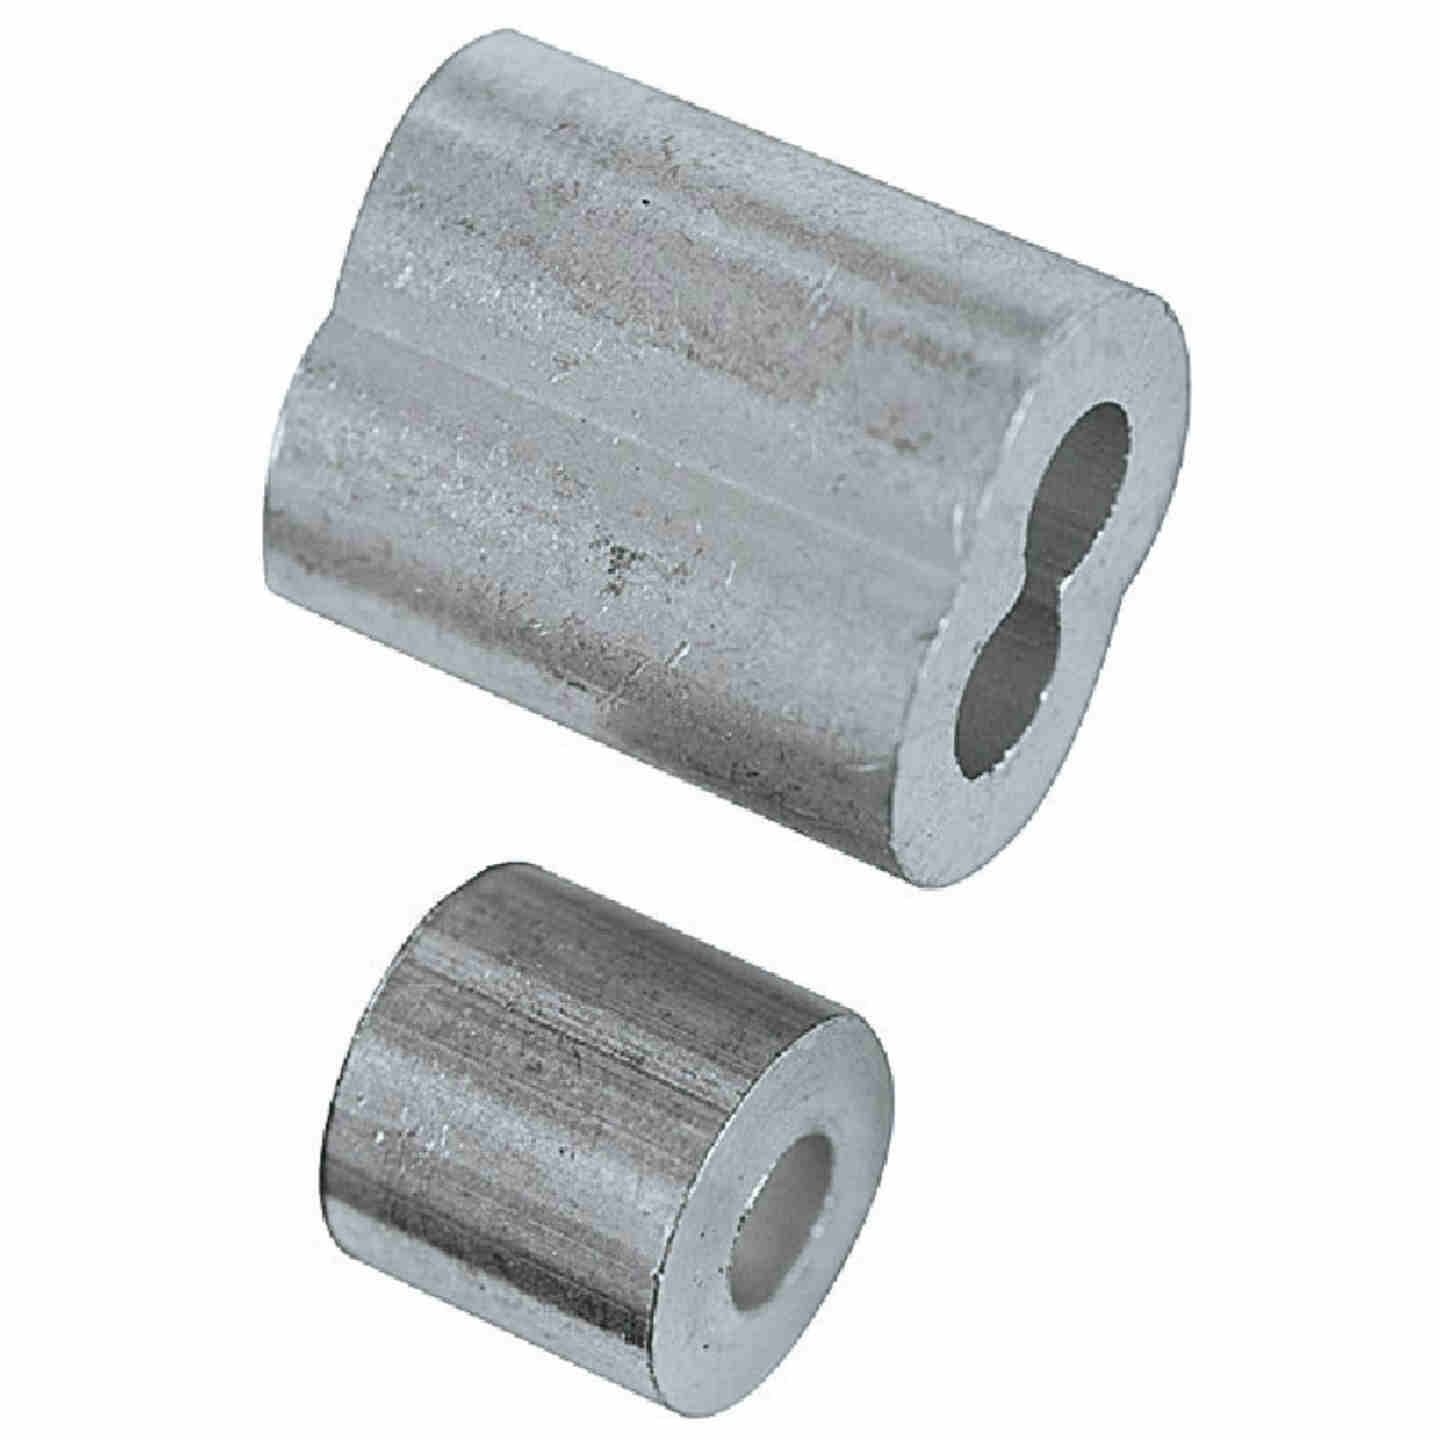 "Prime-Line Cable Ferrules and Stops, 1/8"", Aluminum Image 2"